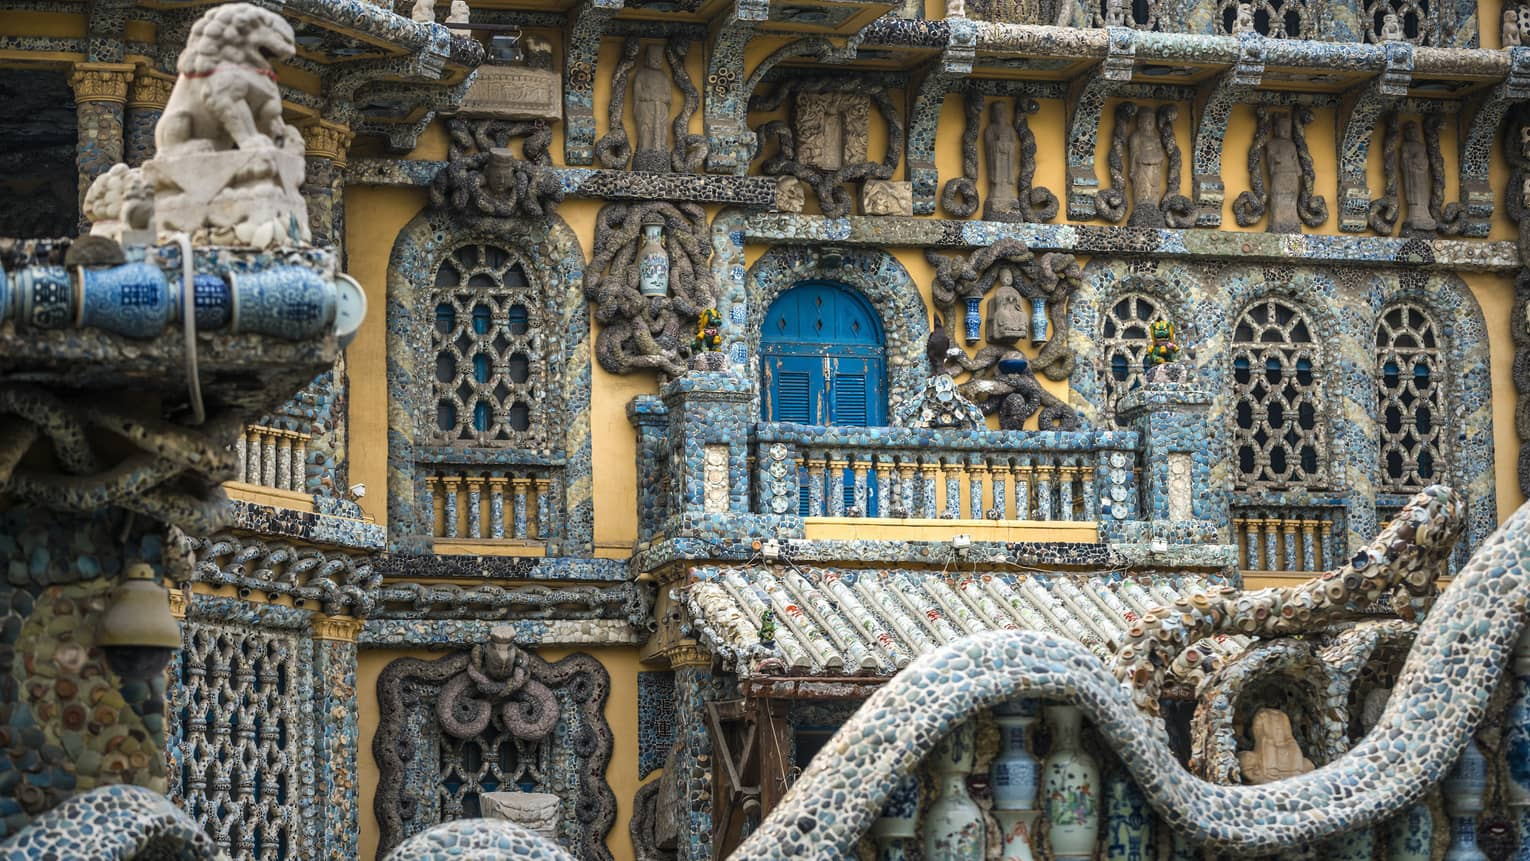 Tianjin Porcelain House exterior, close-up of decorative pottery tiles, stones